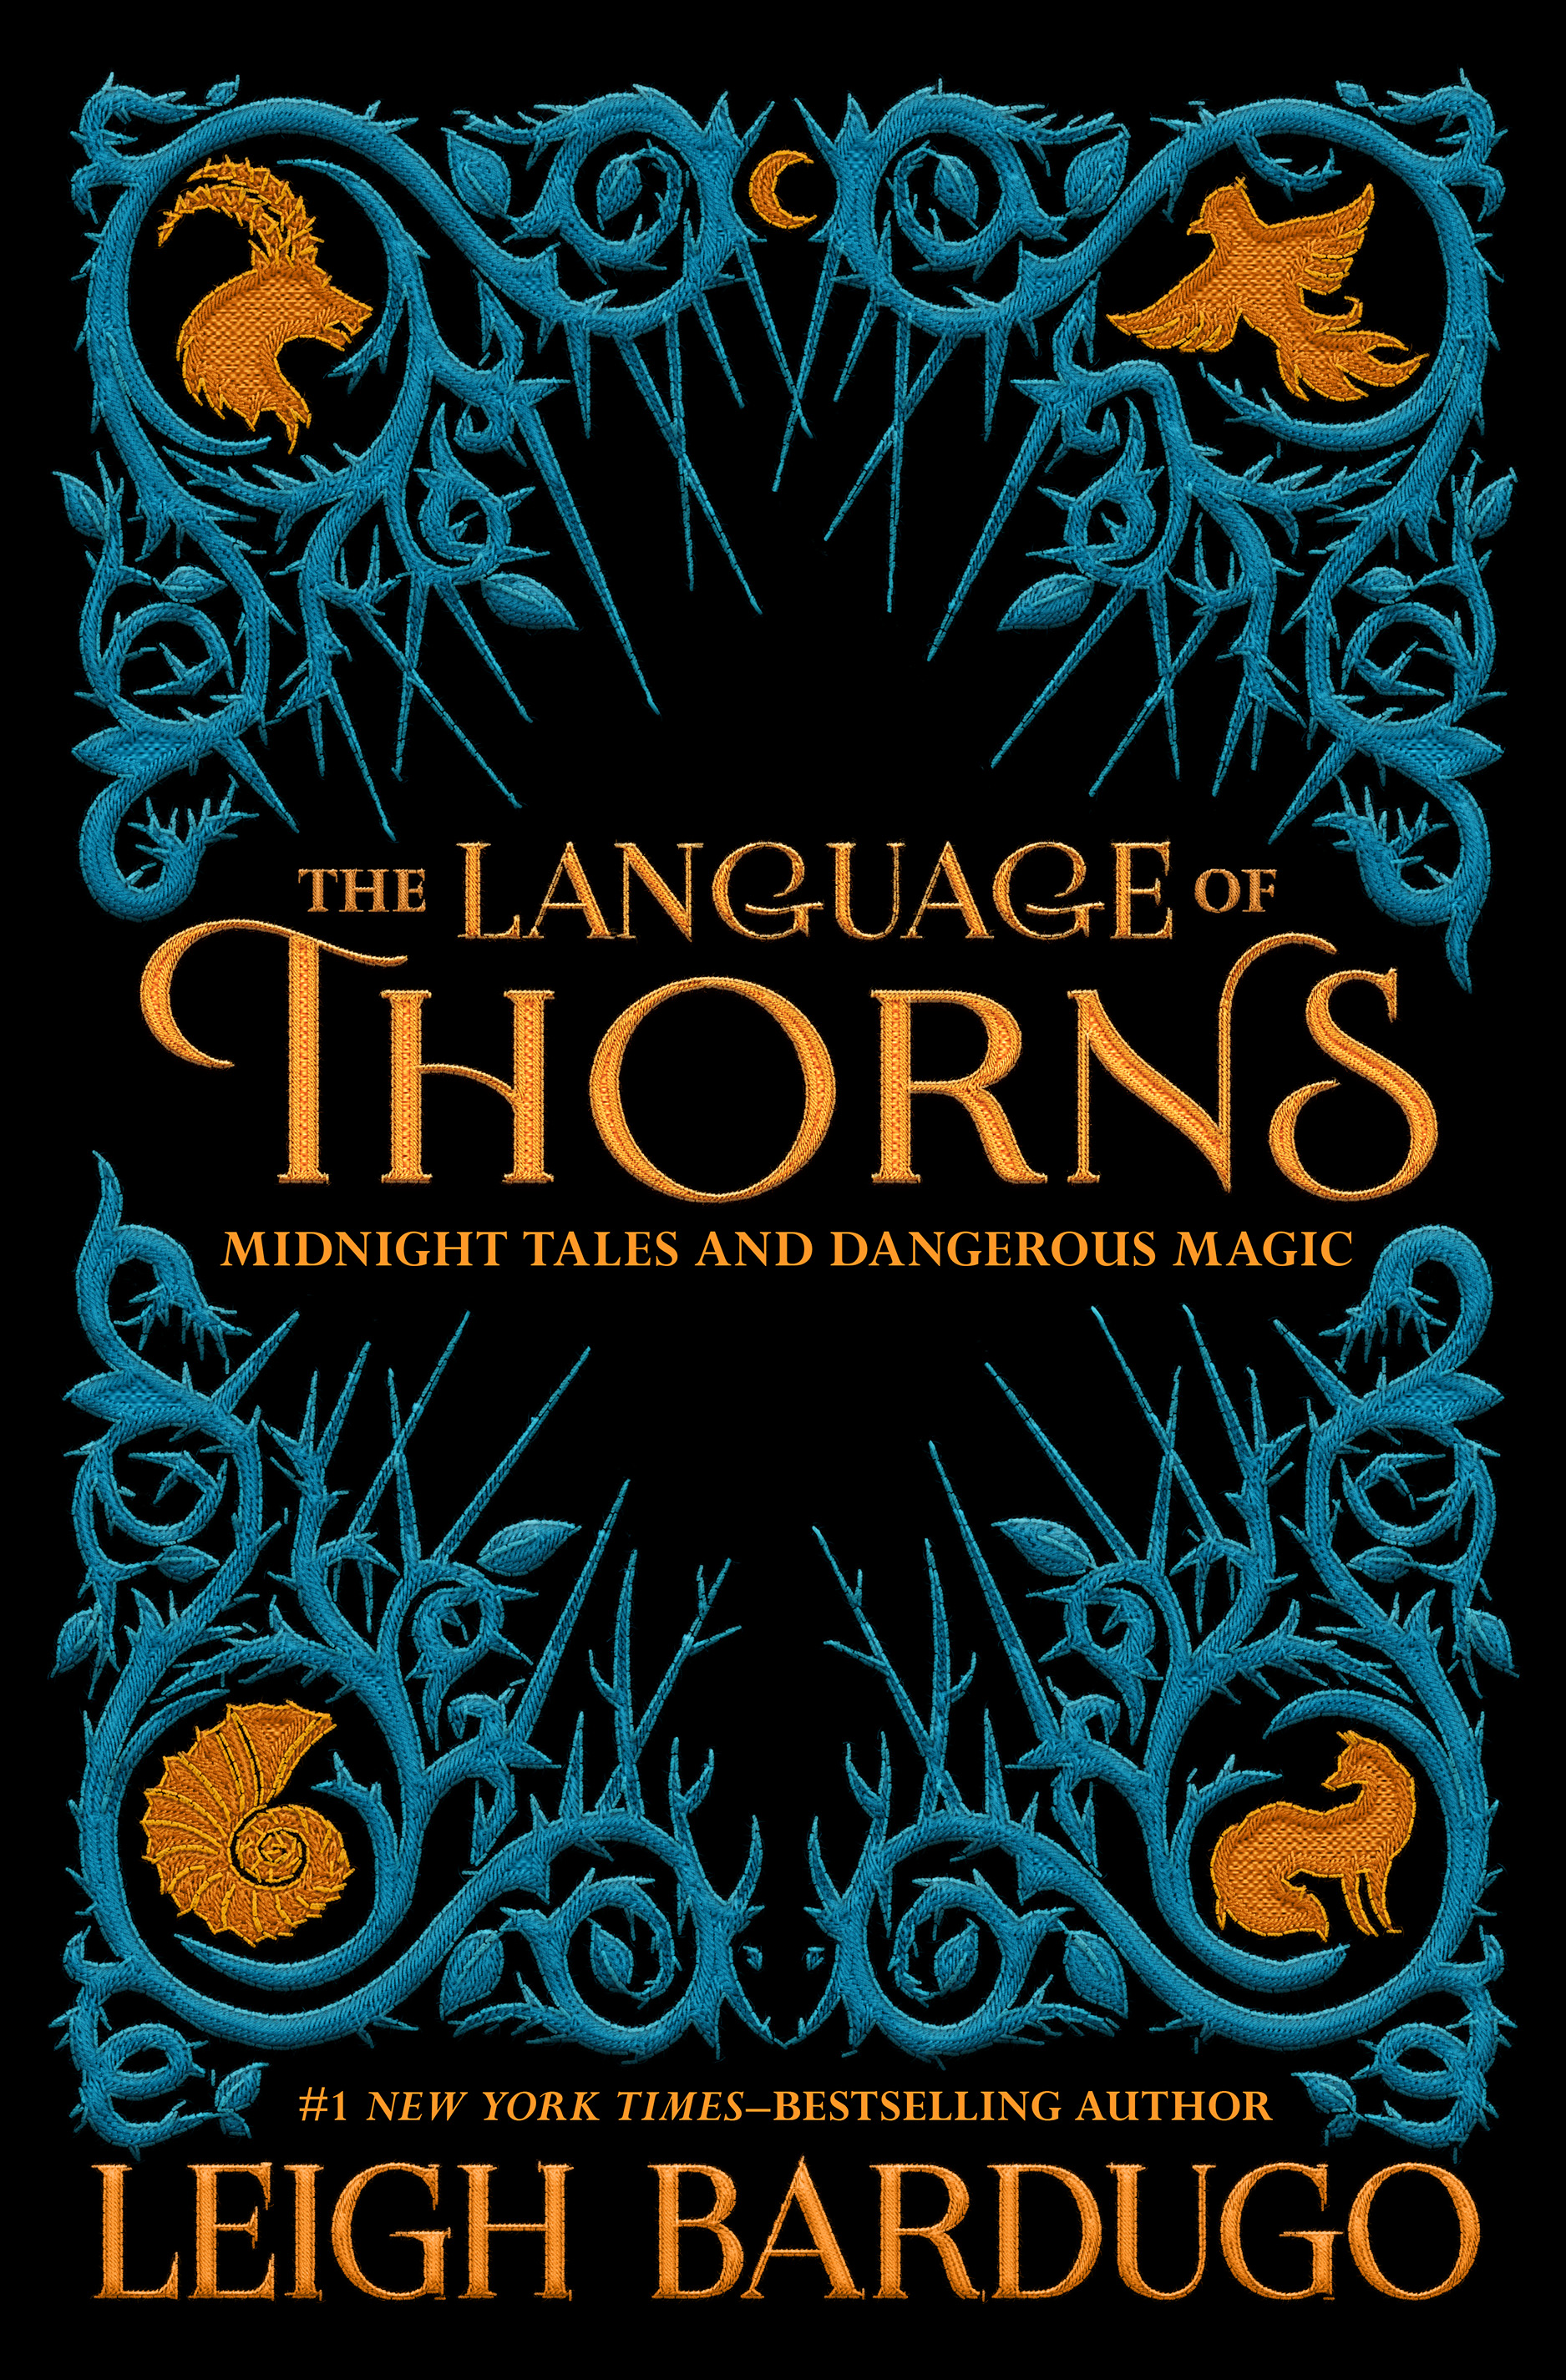 leigh-bardugo-language-thorns.jpg